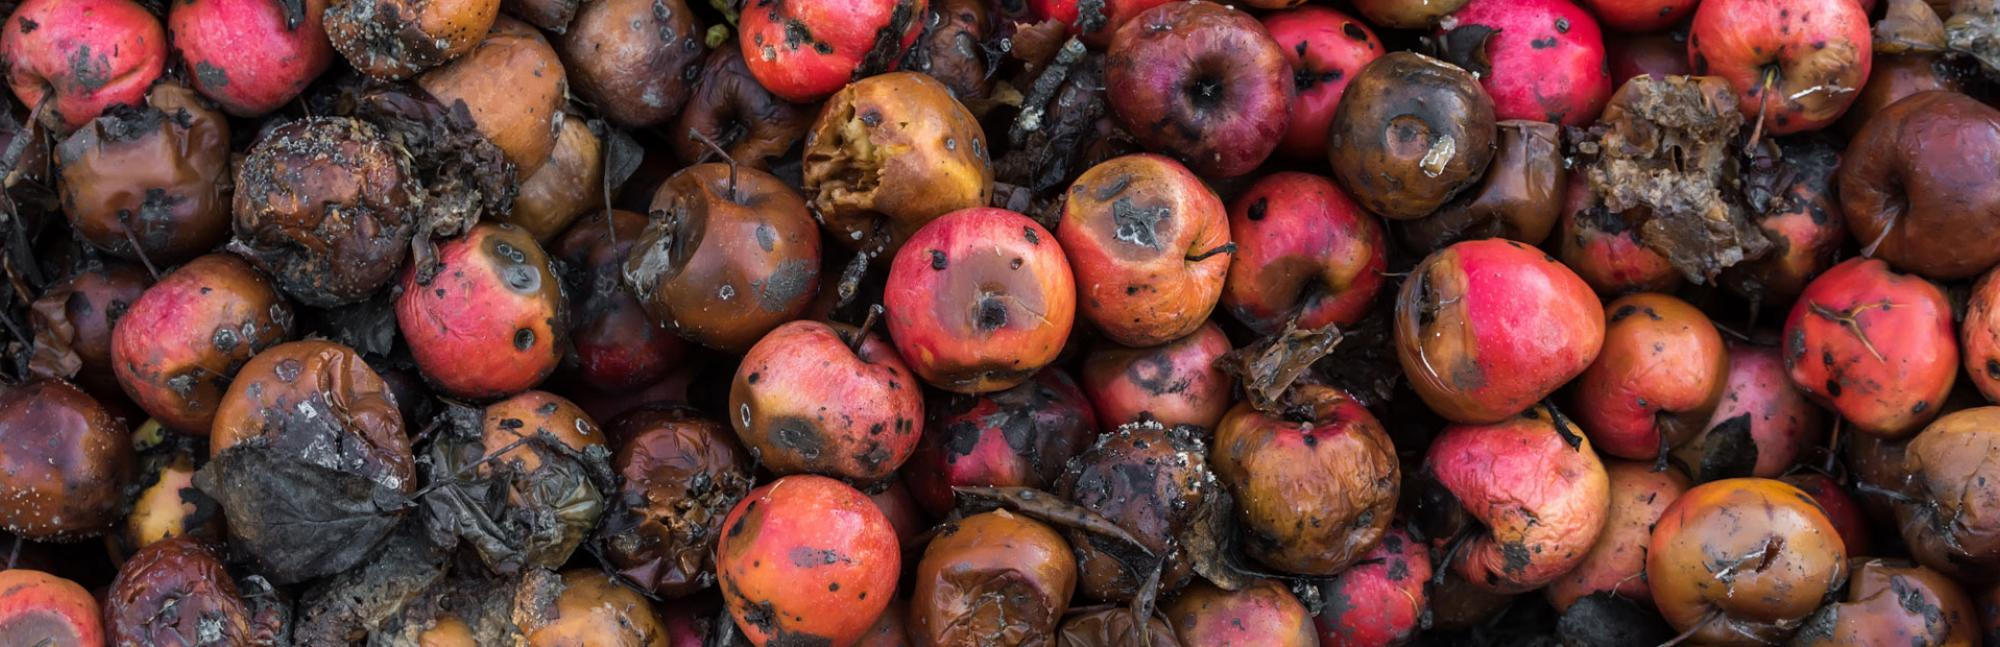 Pile of bruised and mouldy apples